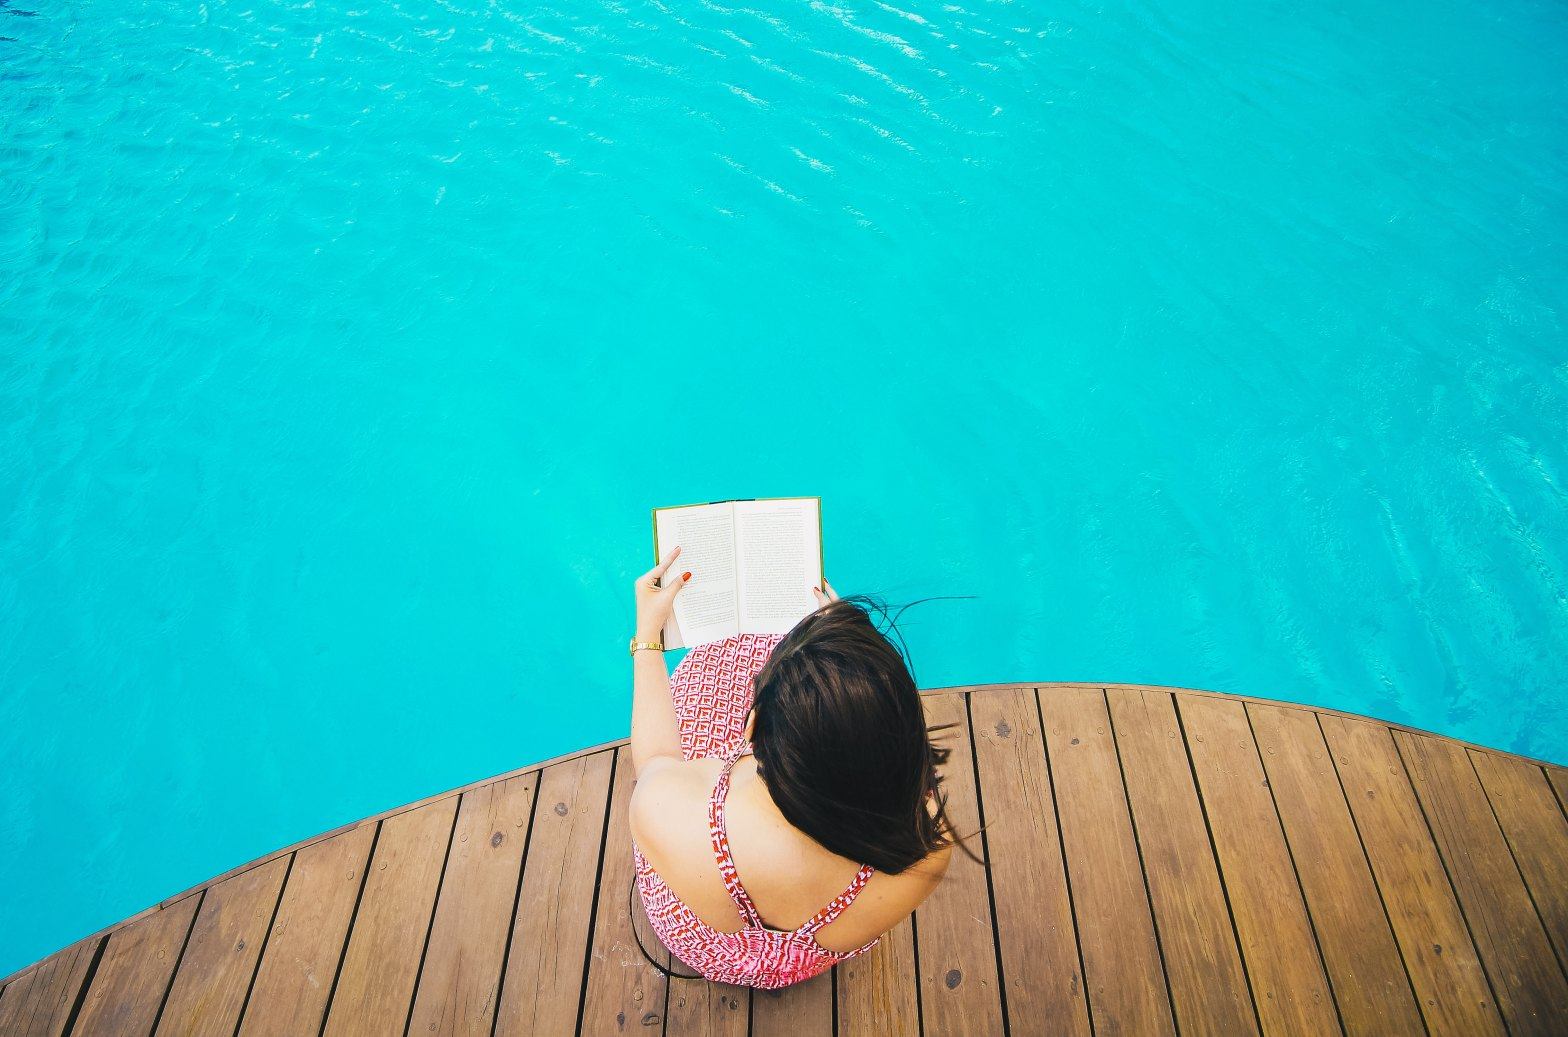 10 Books to Read on Your Next Vacation: Looking for some good vacation reads? Here are 10 books I highly recommend that AREN'T about travel.